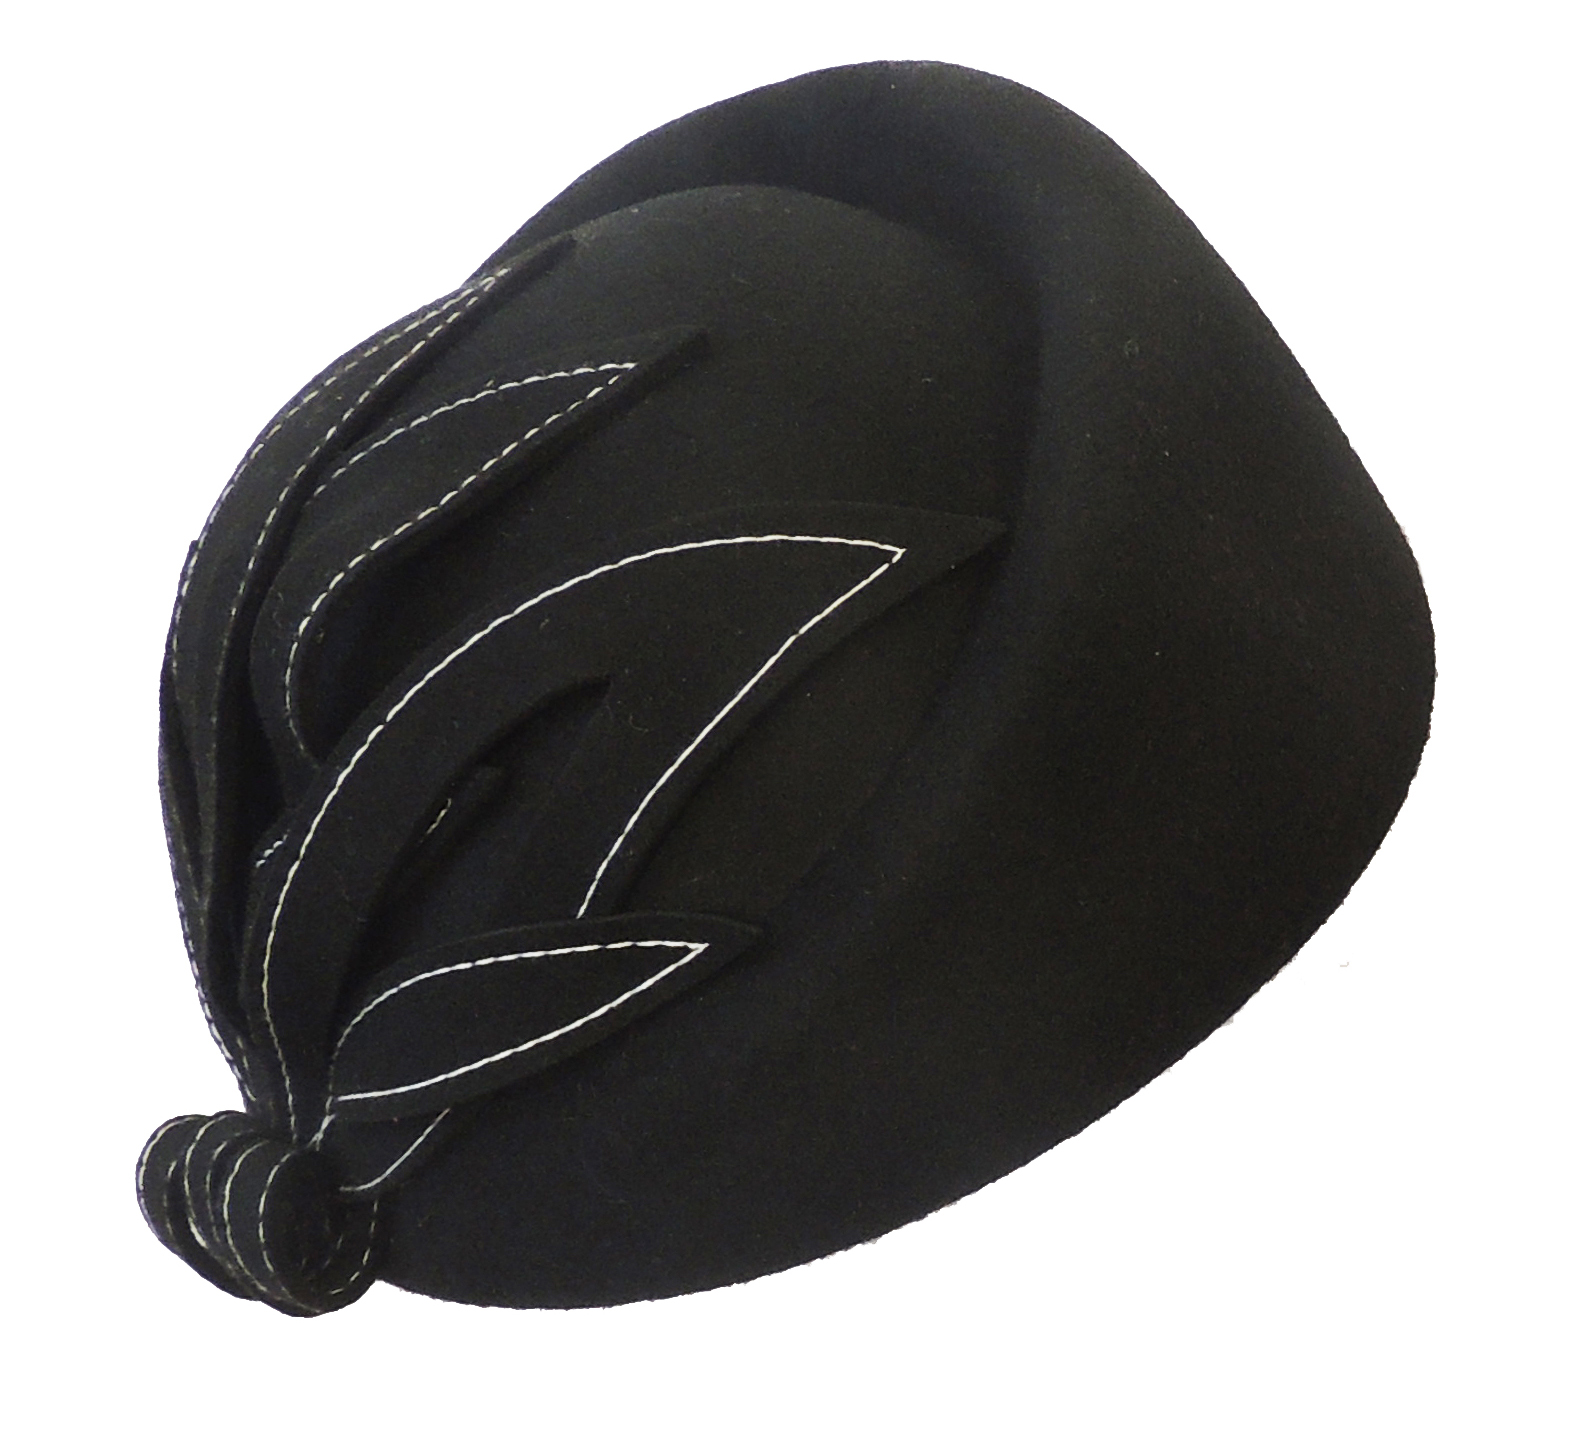 1940s Hats History    New Vintage 1940s 50s style Elegant Felt Appliqué Cloche Hat $29.99 AT vintagedancer.com